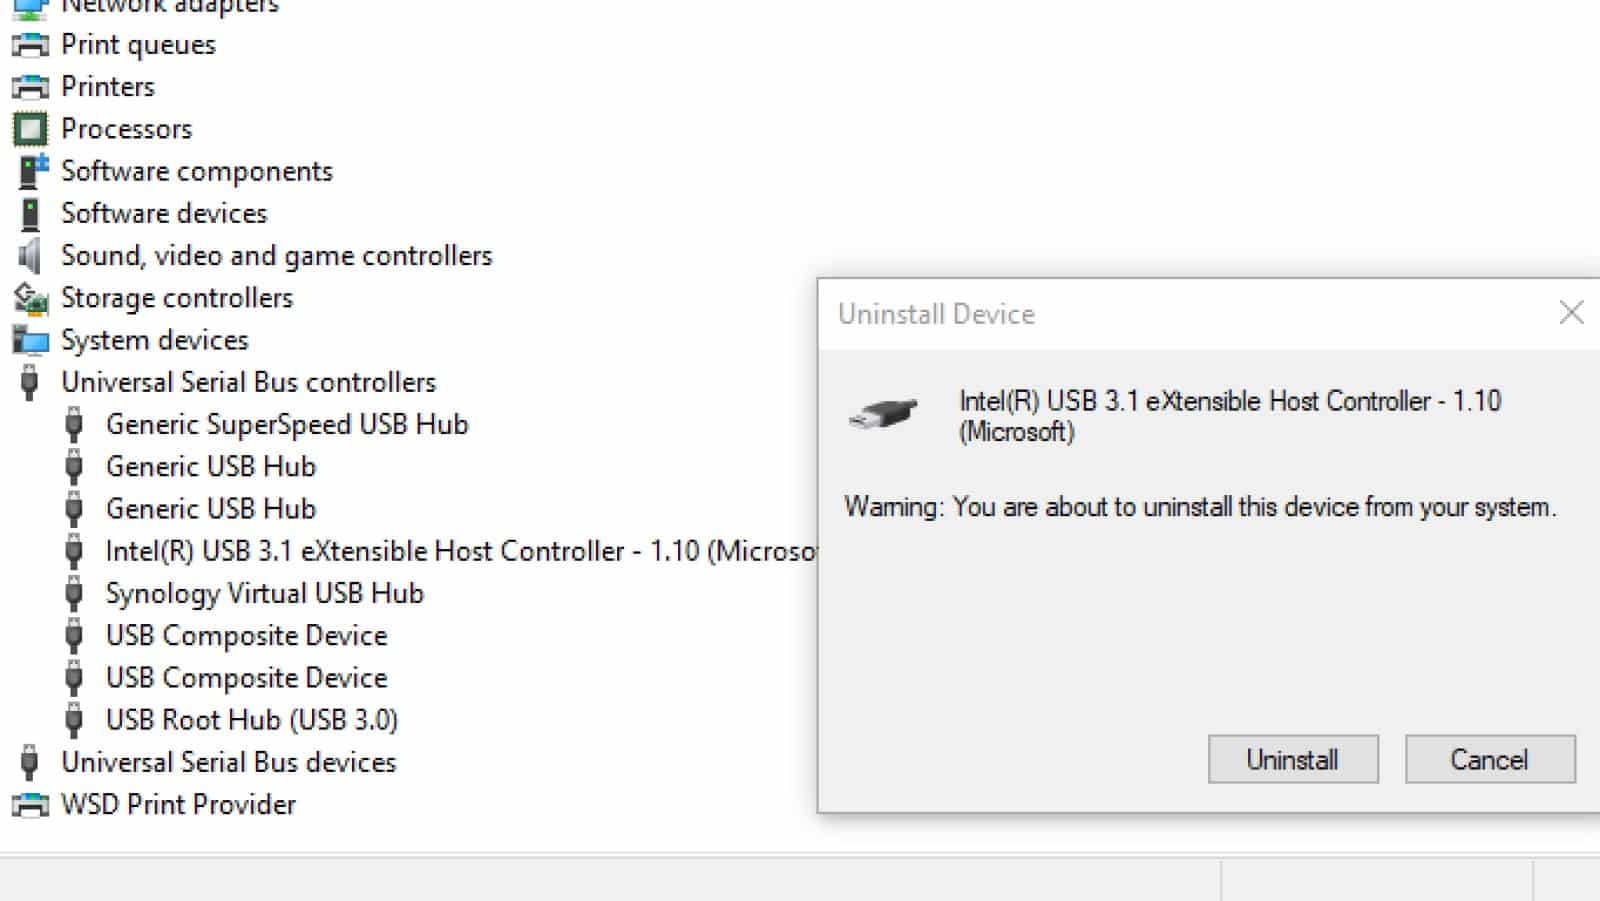 windows 10 device manager showing the uninstall of usb host controller